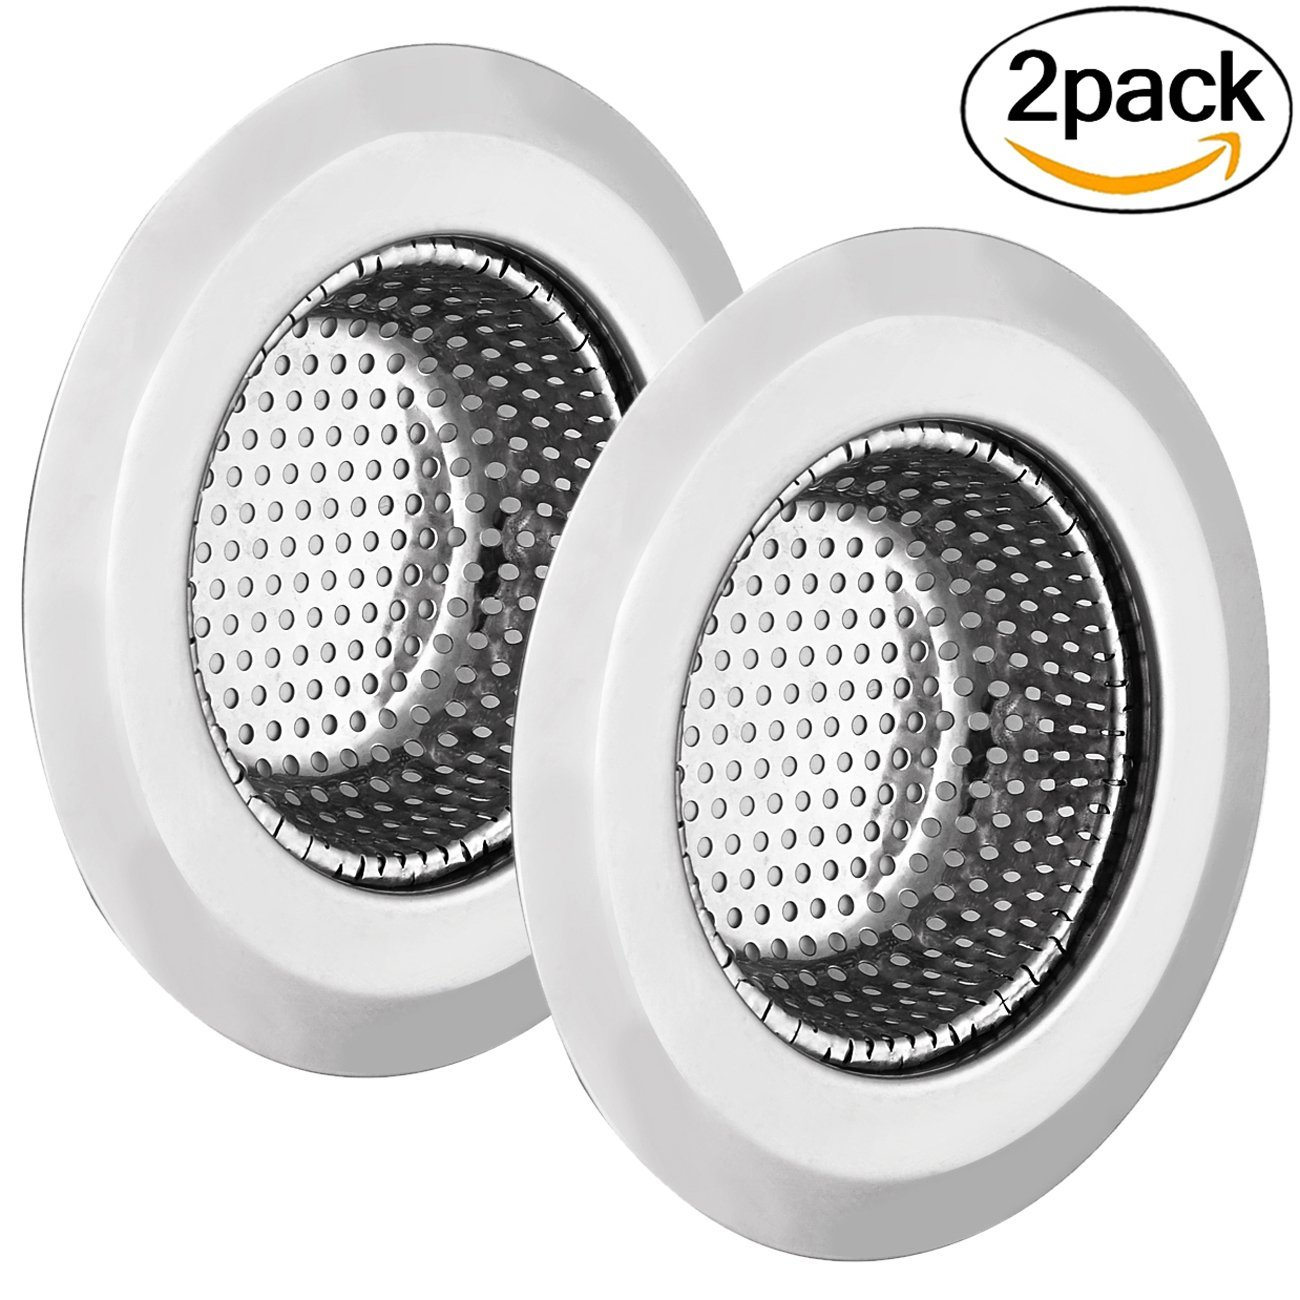 Outgeek 2 Pack Sink Strainer Stainless Steel Sink Strainer for Kitchen Sinks with Wide Rim by Outgeek